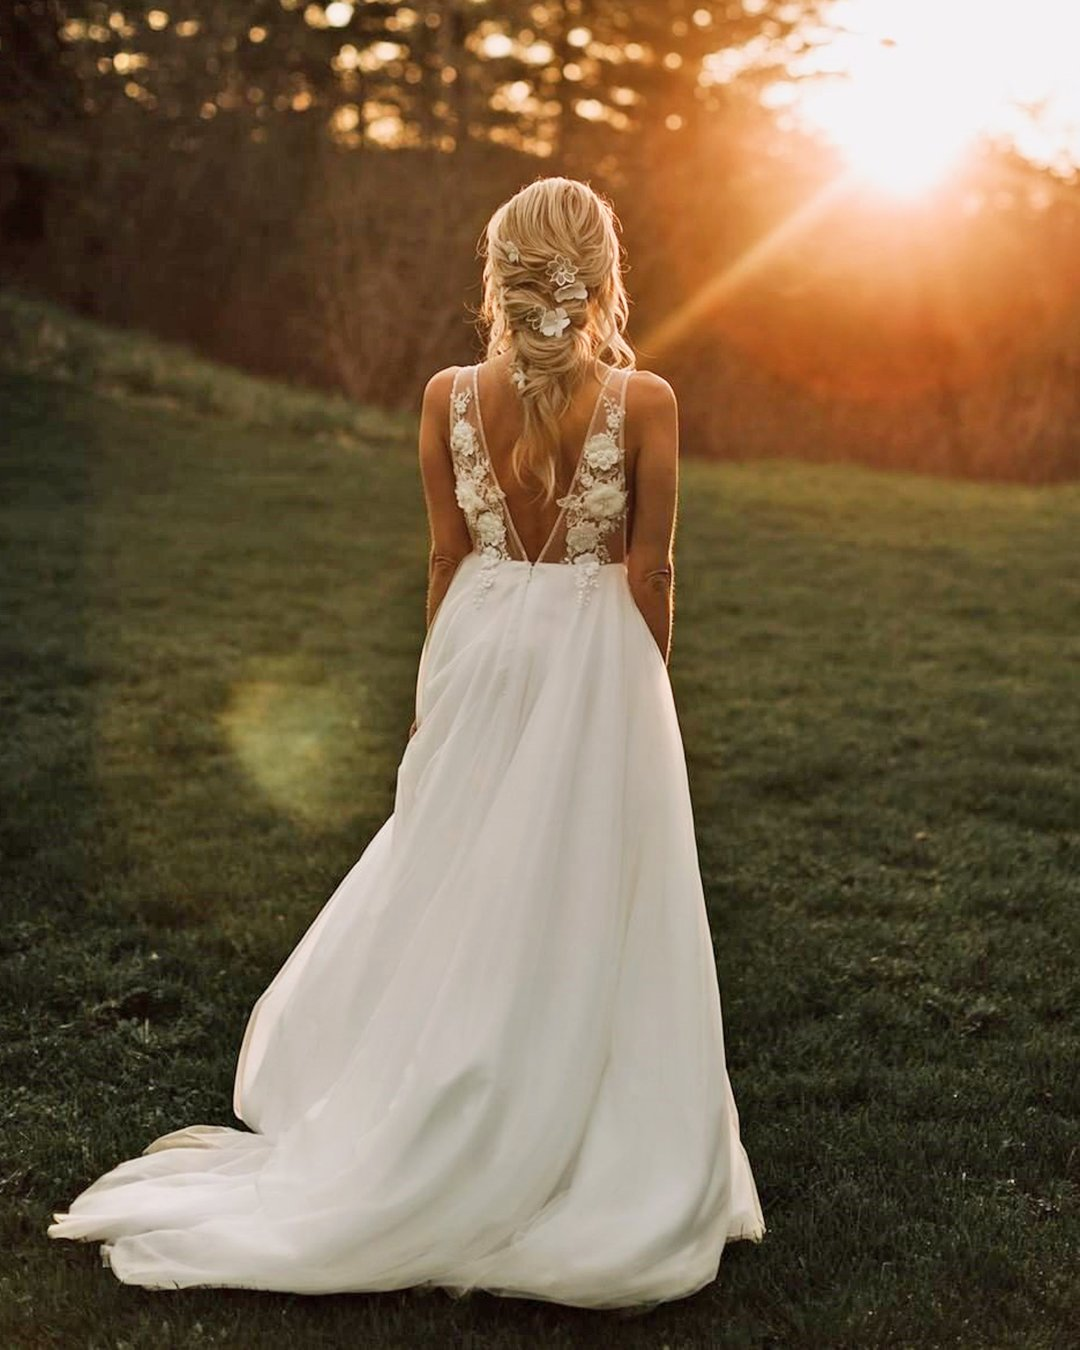 country style wedding dresses aline v back sleveless goddessbynature